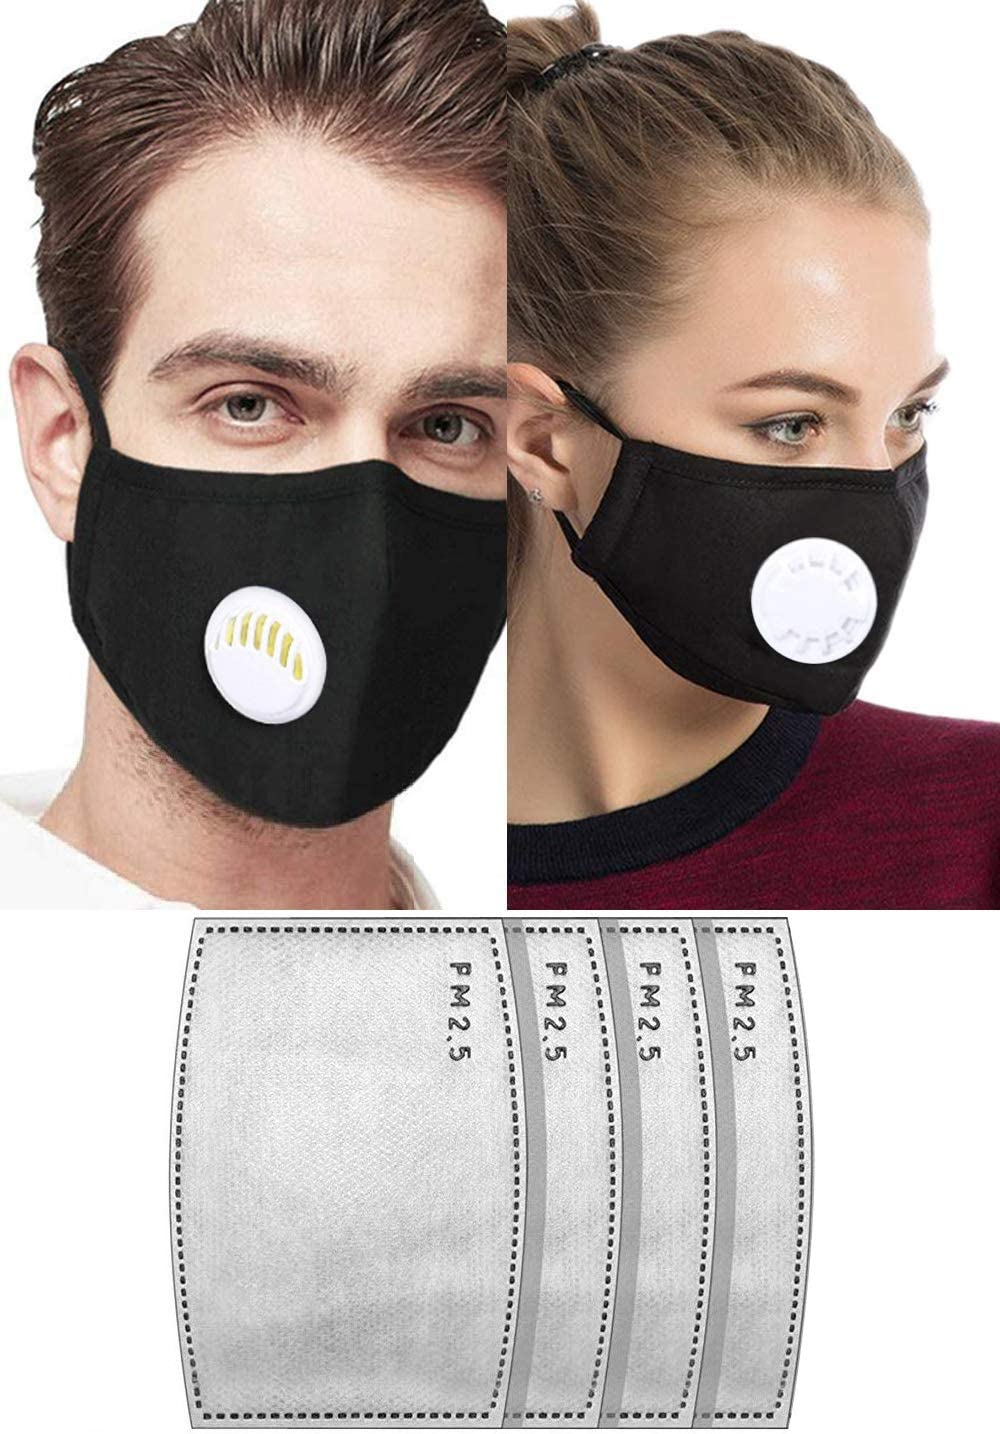 n95 washable mask